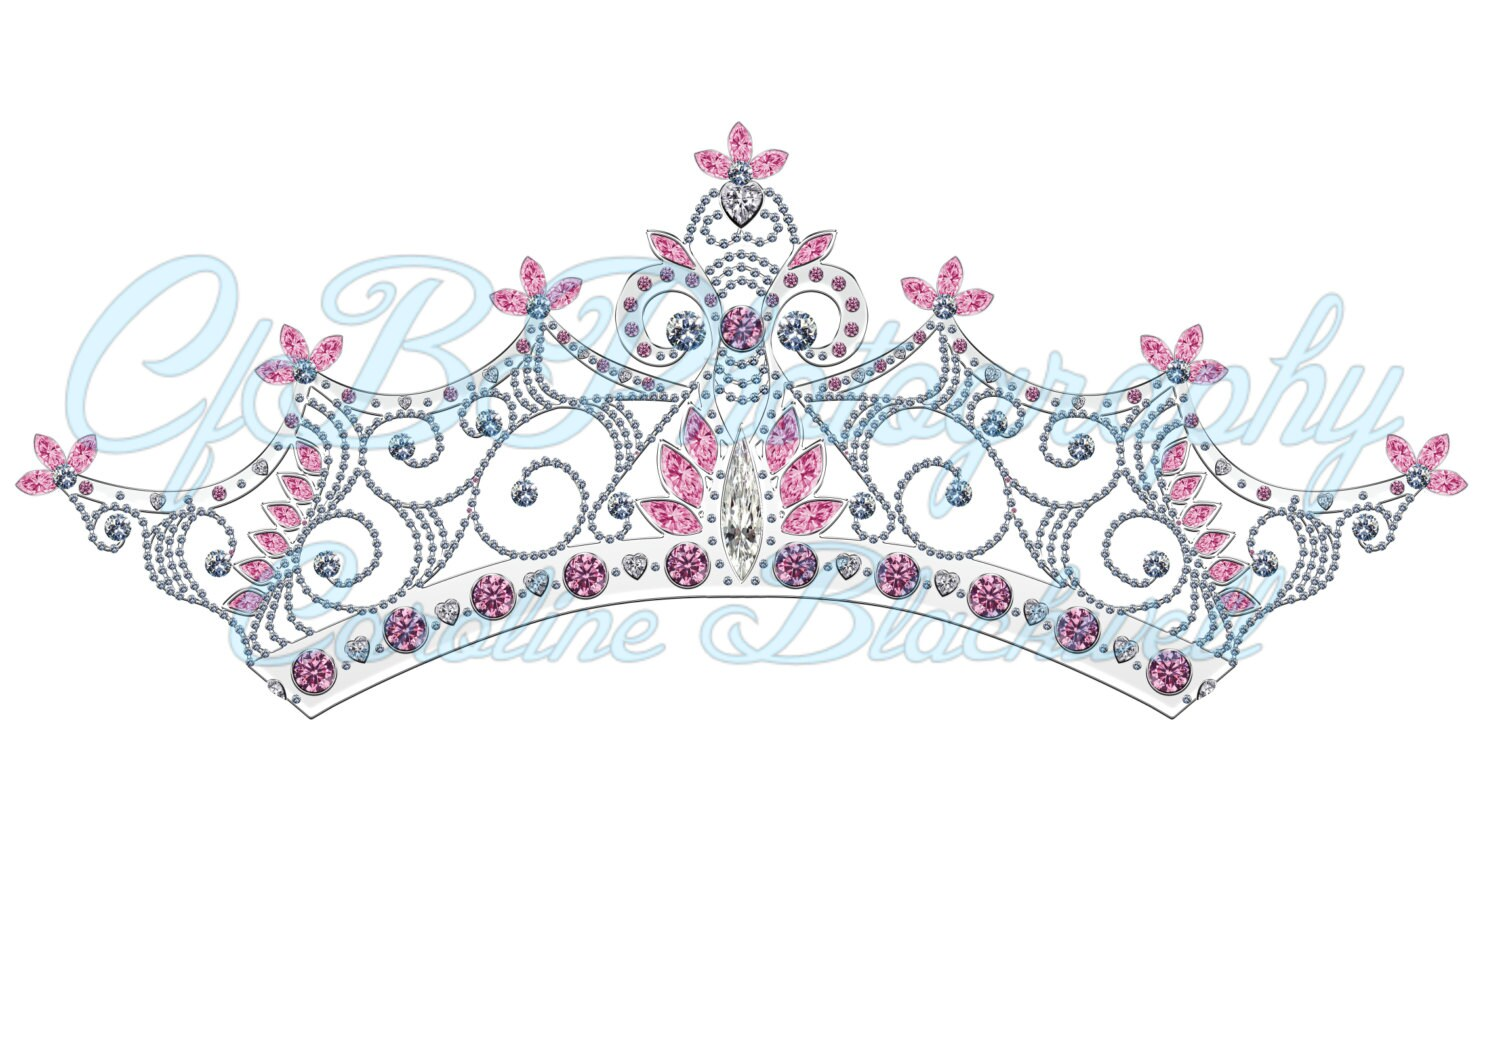 7 Princess Crowns Pngles Instant Download Etsy